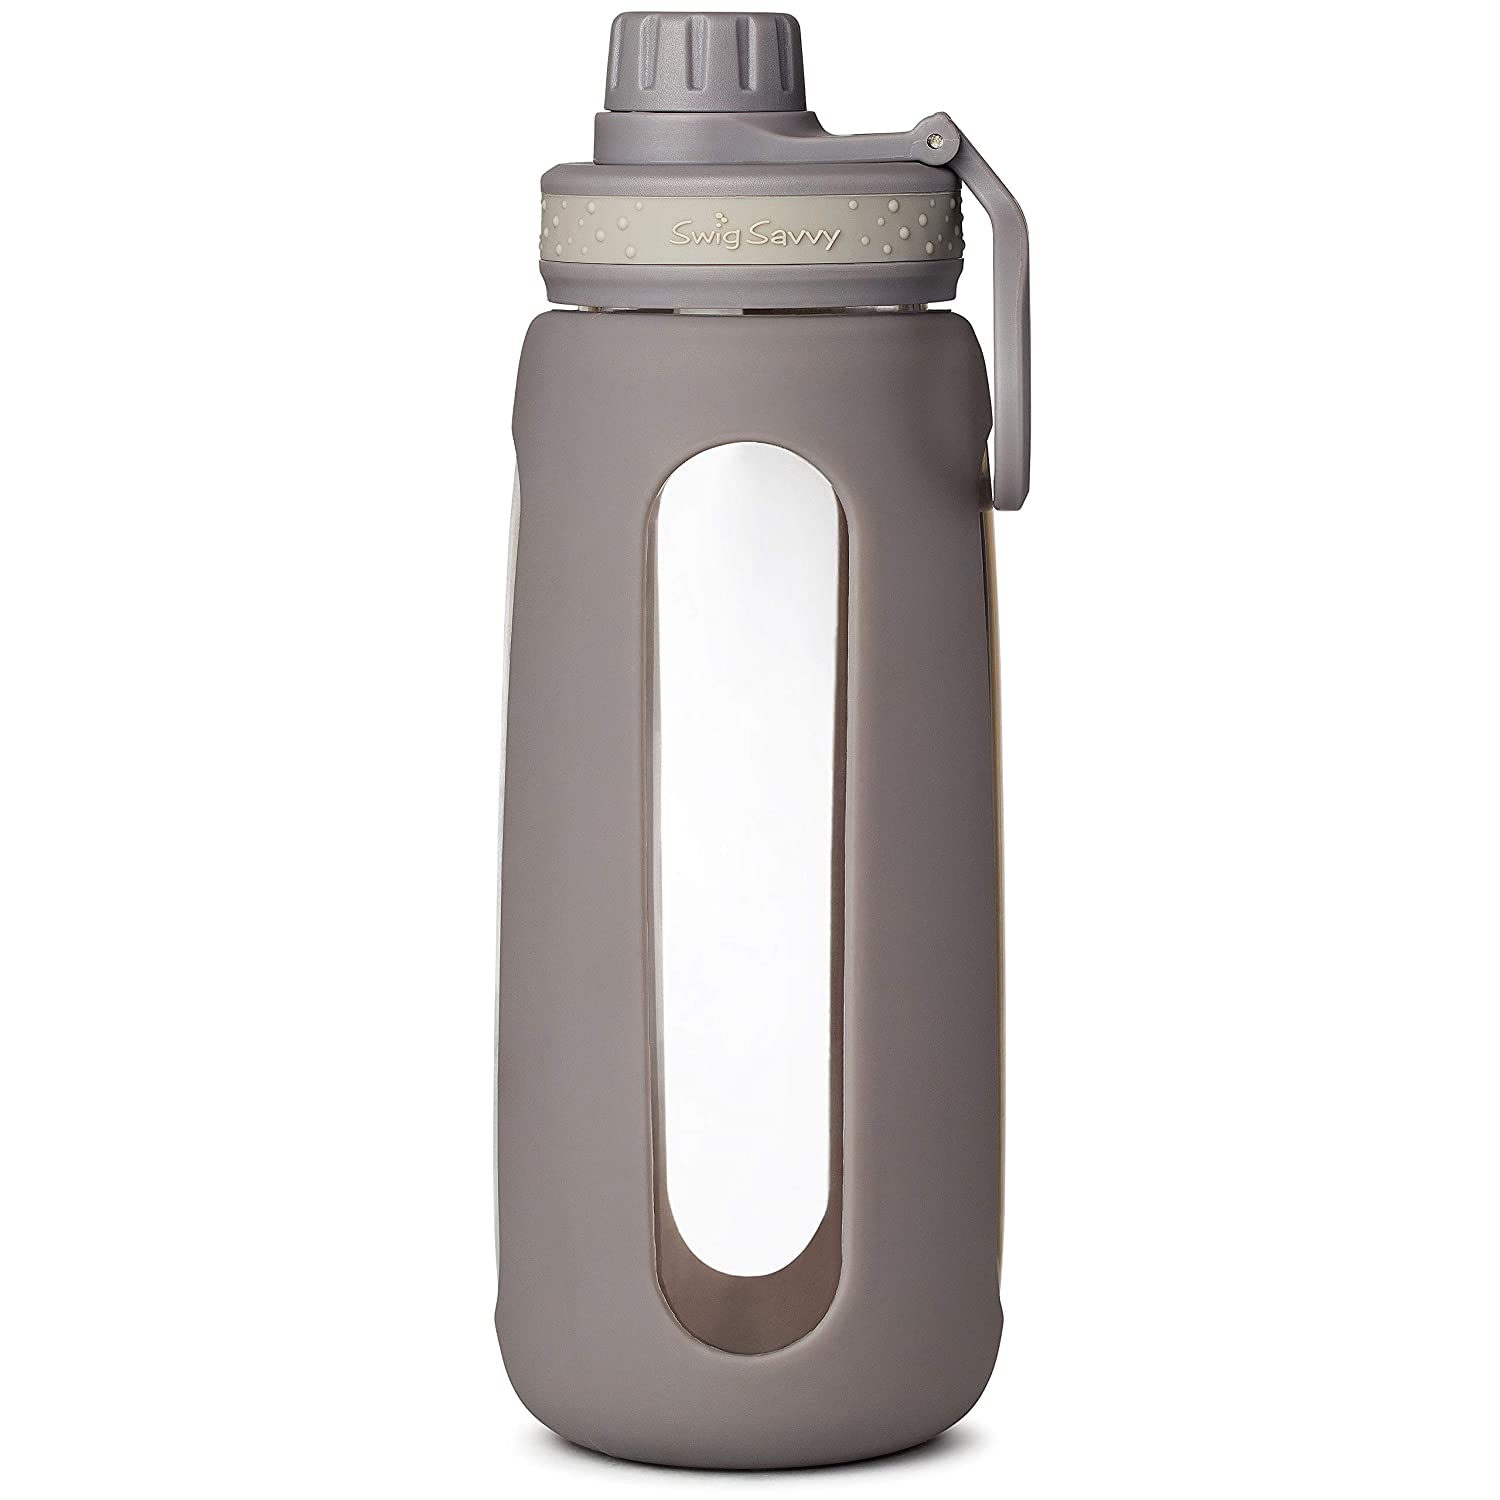 SWIG SAVVY Glass Water Bottles with Protective Silicone Sleeve /& Stainless Steel Leak Proof Lid BPA /& Plastic Free Stylish Design Wide Mouth Reusable Drinking Container